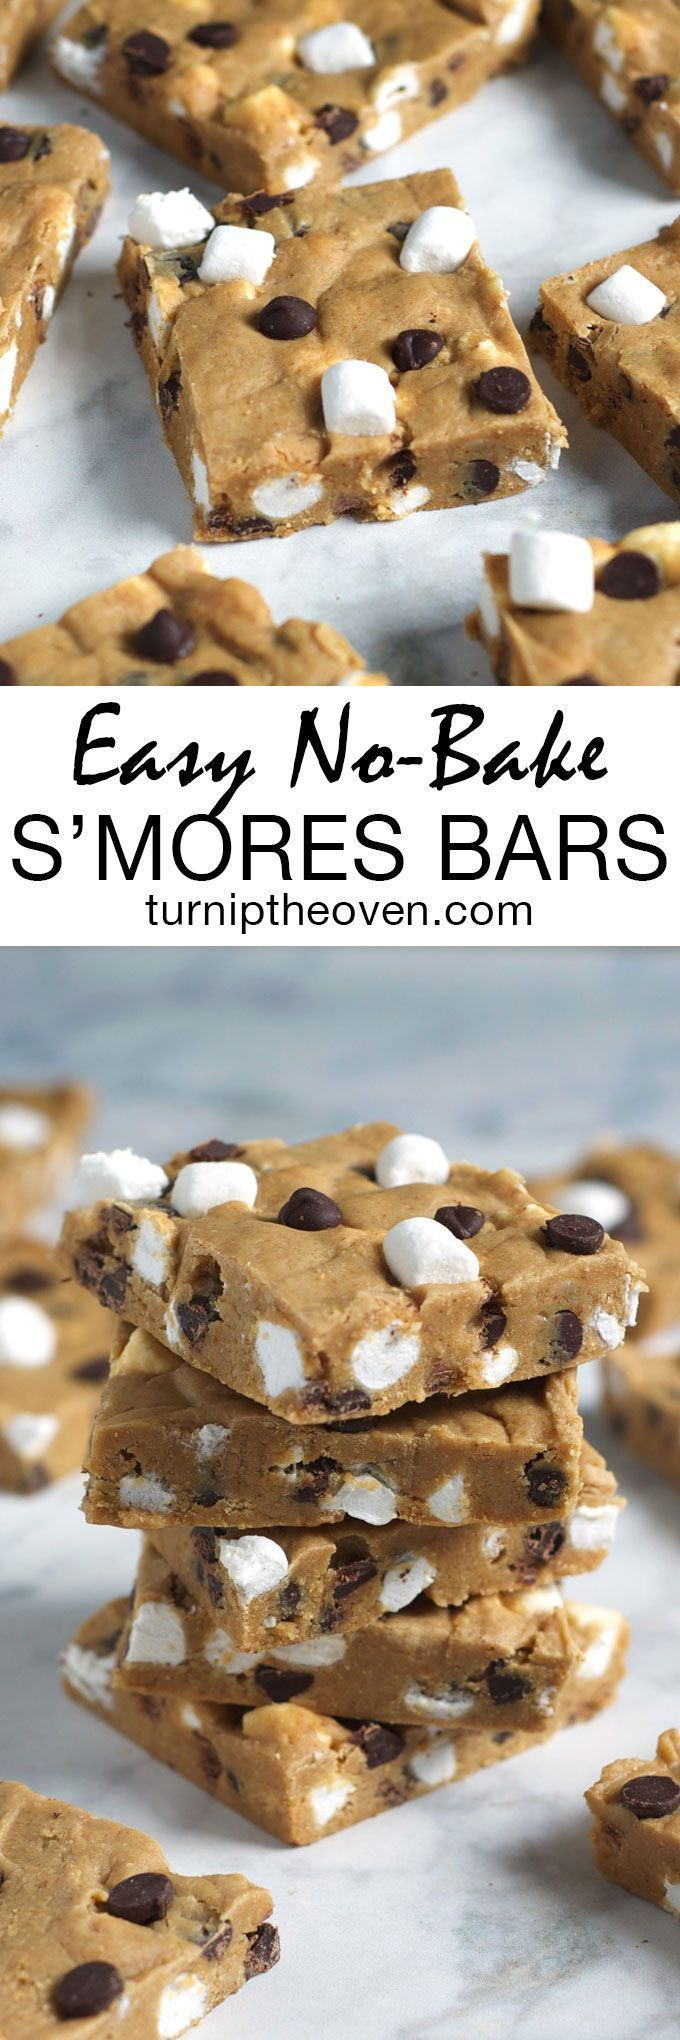 No-Bake S'Mores Bars These easy no-bake s'mores are like a cross between cookie dough, fudge, and everyone's favorite campfire dessert! All you need is 10 minutes and 9 simple ingredients!These easy no-bake s'mores are like a cross between cookie dough, fudge, and everyone's favorite campfire dessert! All you need is 10 minutes and 9 simple ingredients!